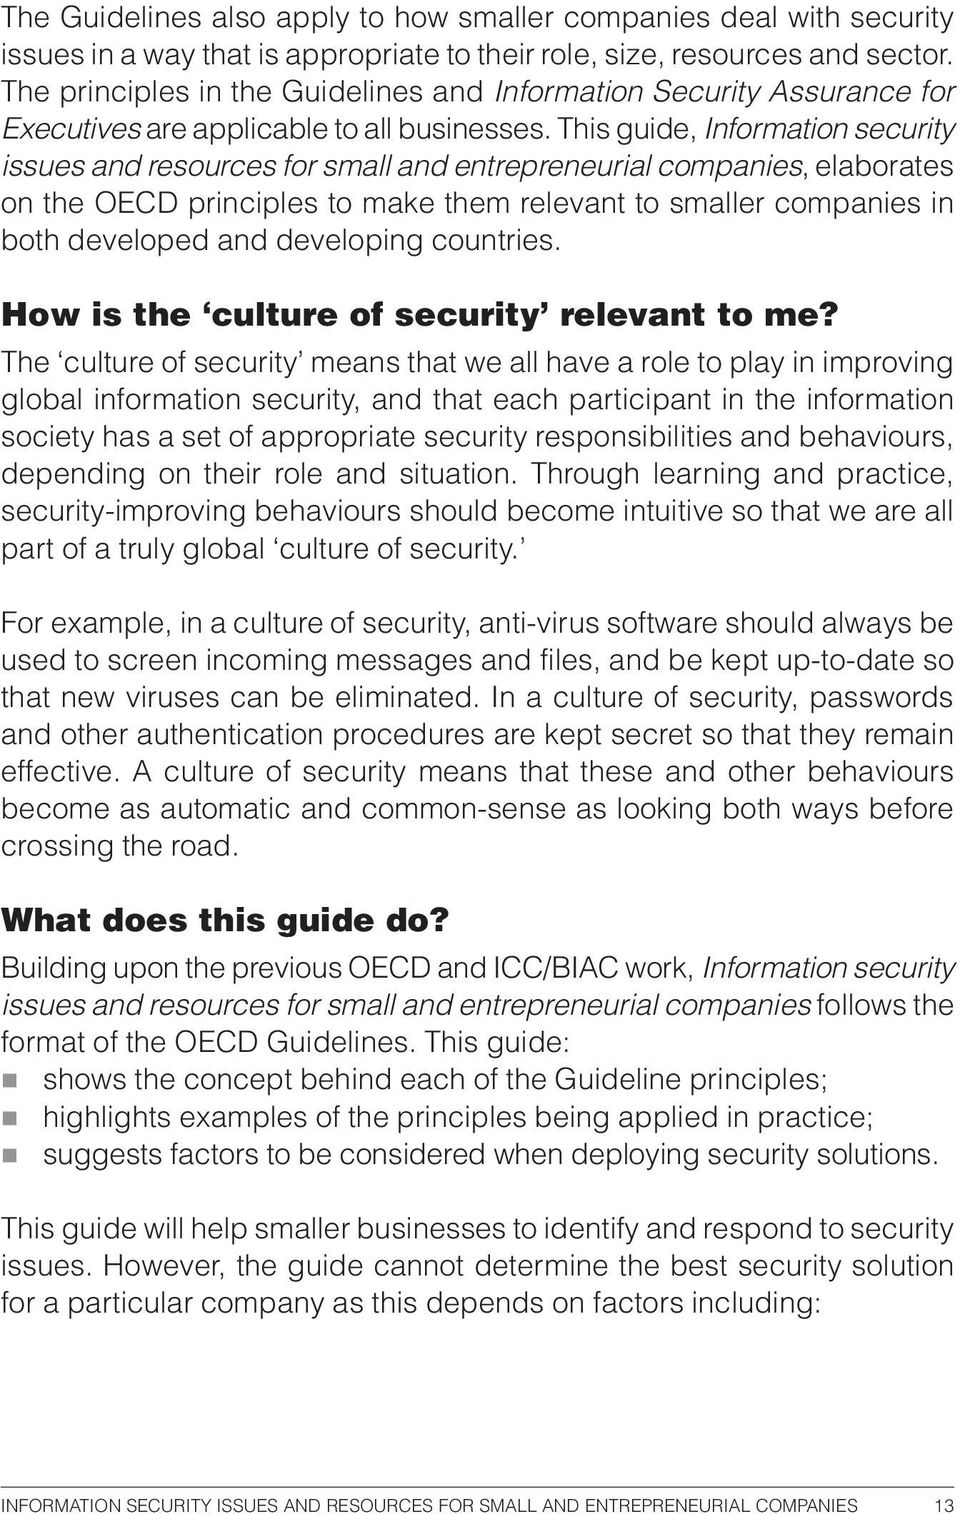 This guide, Iformatio security issues ad resources for small ad etrepreeurial compaies, elaborates o the OECD priciples to make them relevat to smaller compaies i both developed ad developig coutries.